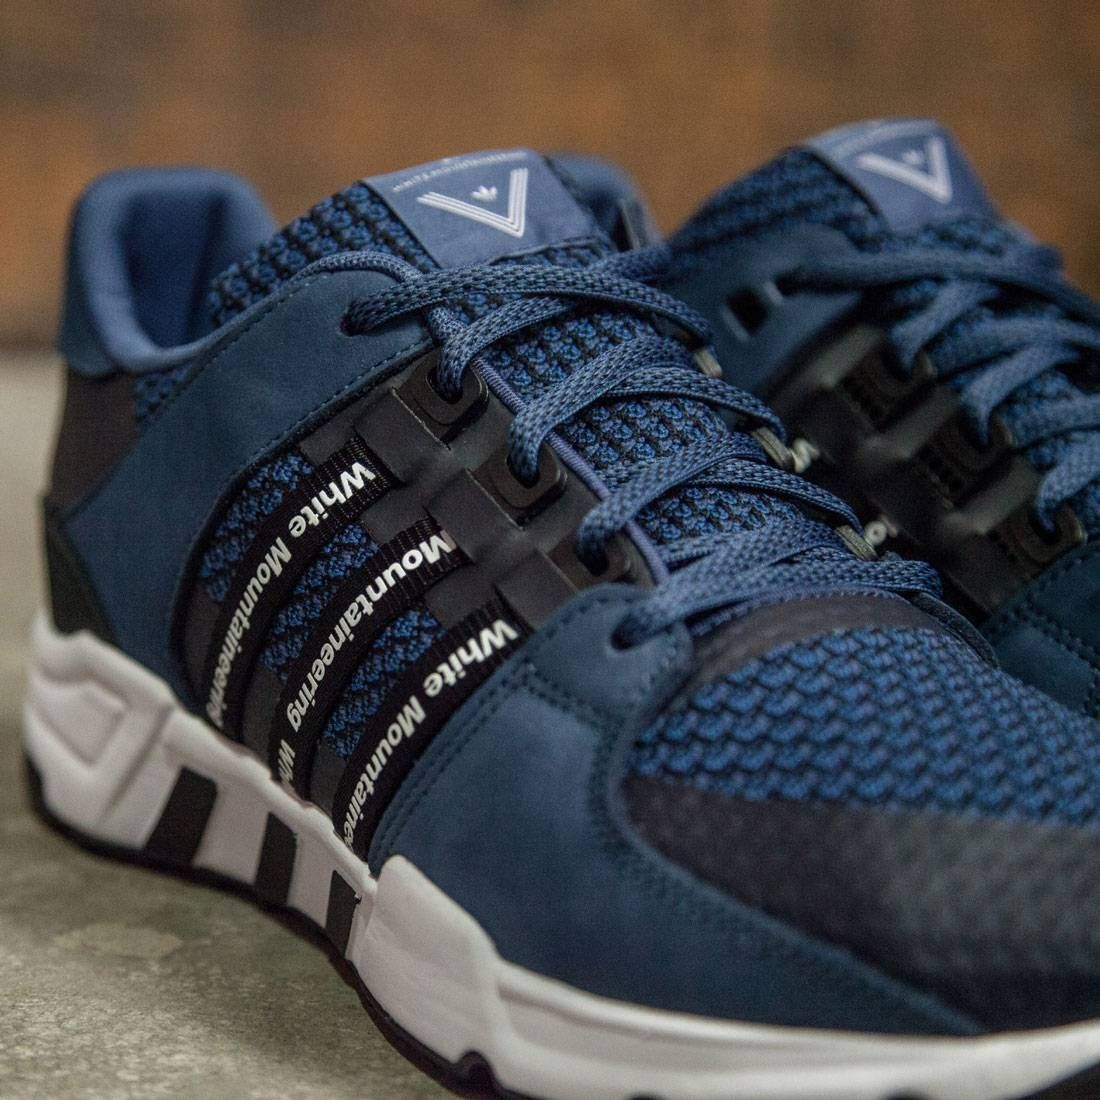 new product ebcd2 9aa14 Adidas Men White Mountaineering EQT Running navy night marine dark marine  collegiate navy